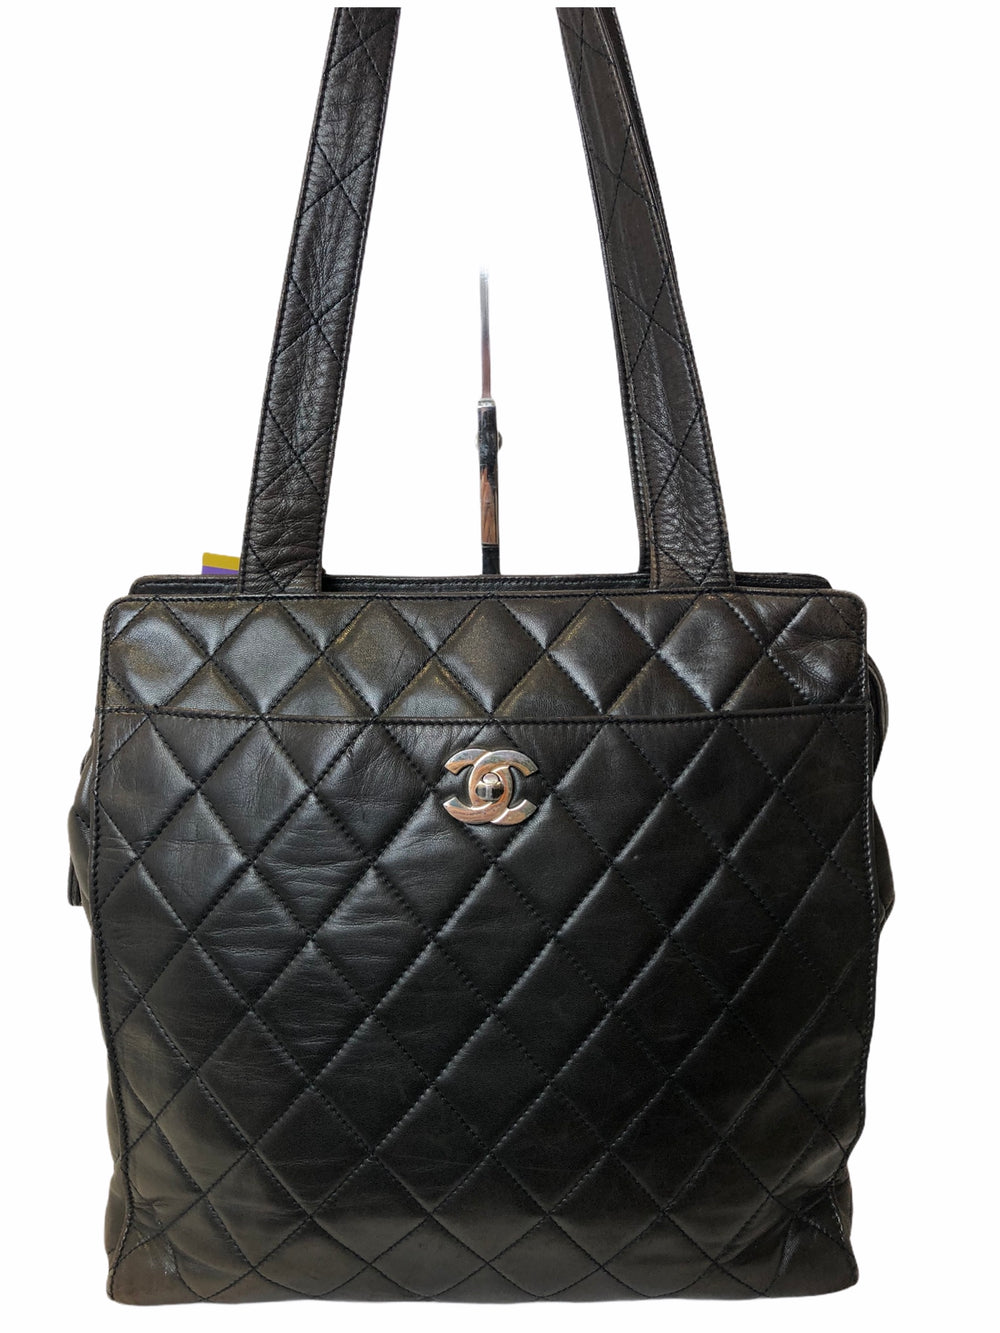 Chanel Vintage Chocolate Brown Lambskin Leather Tote with Silvertone Hardware